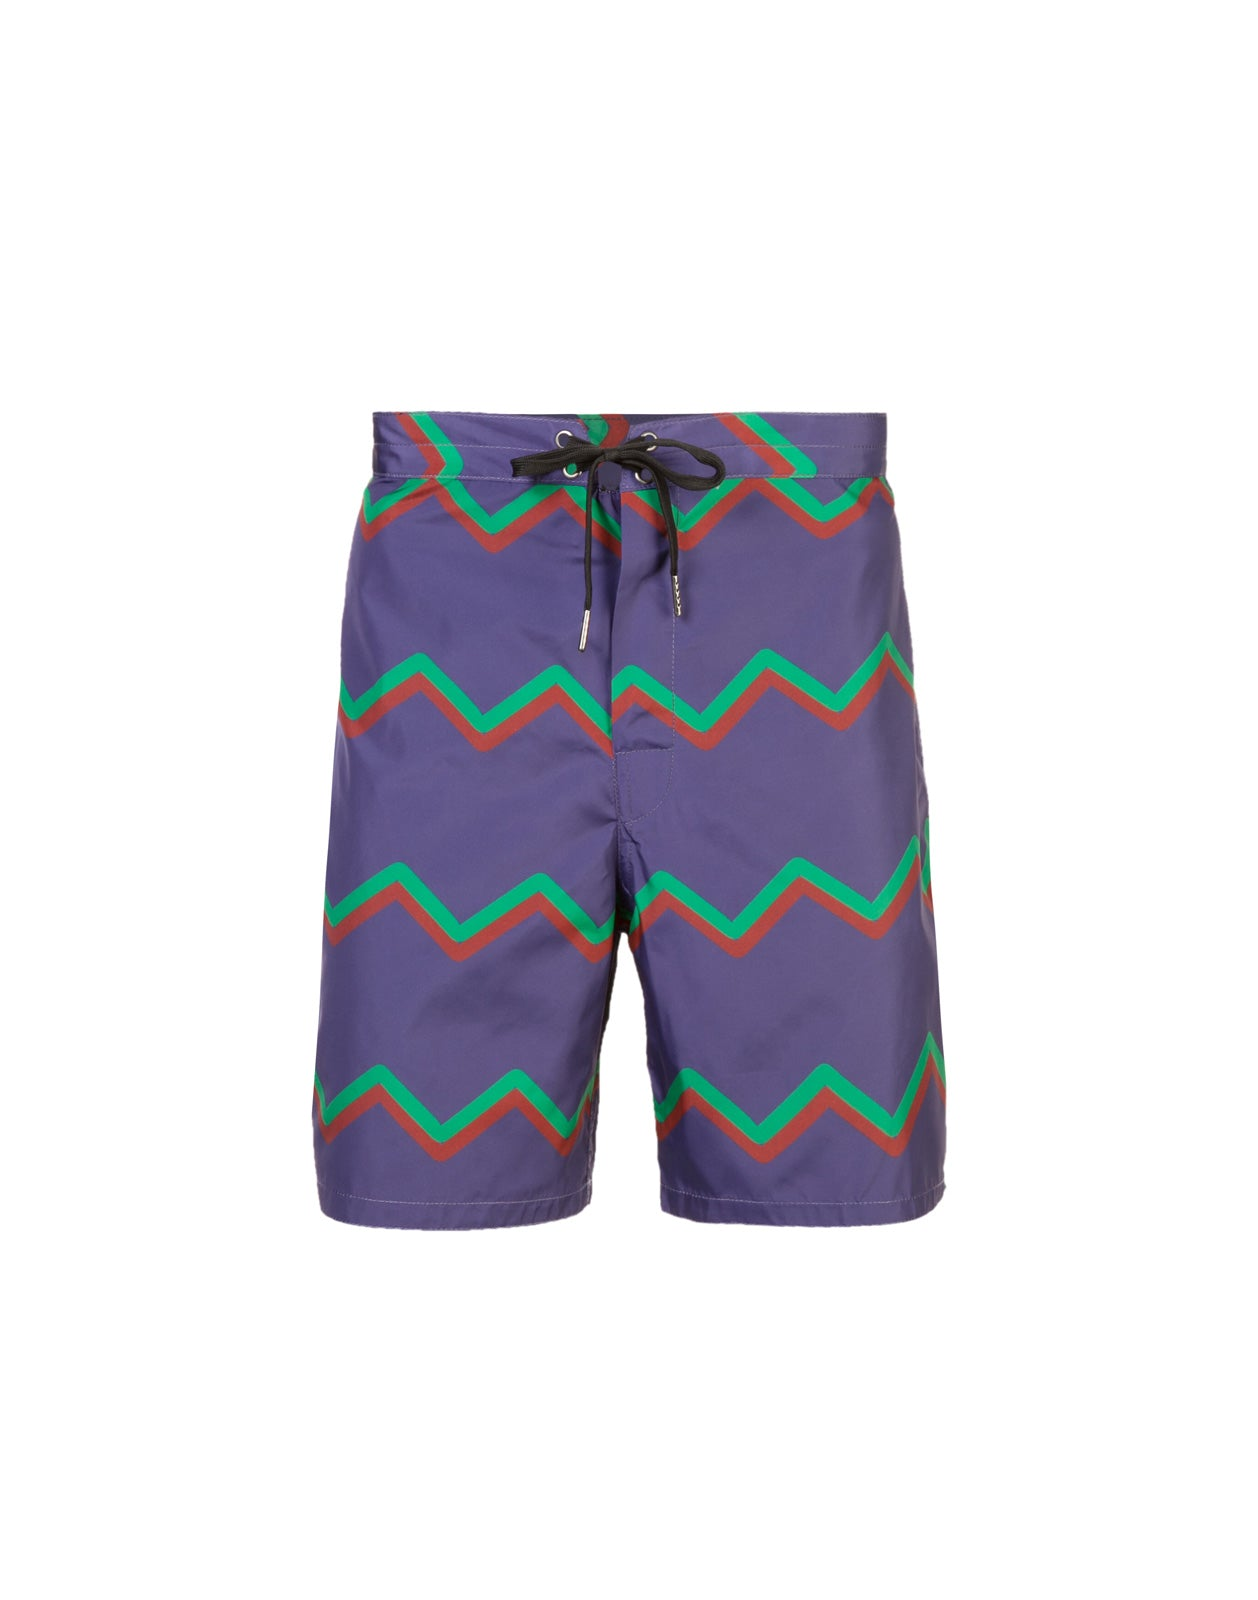 Product image of board shorts with chevron print stripes.